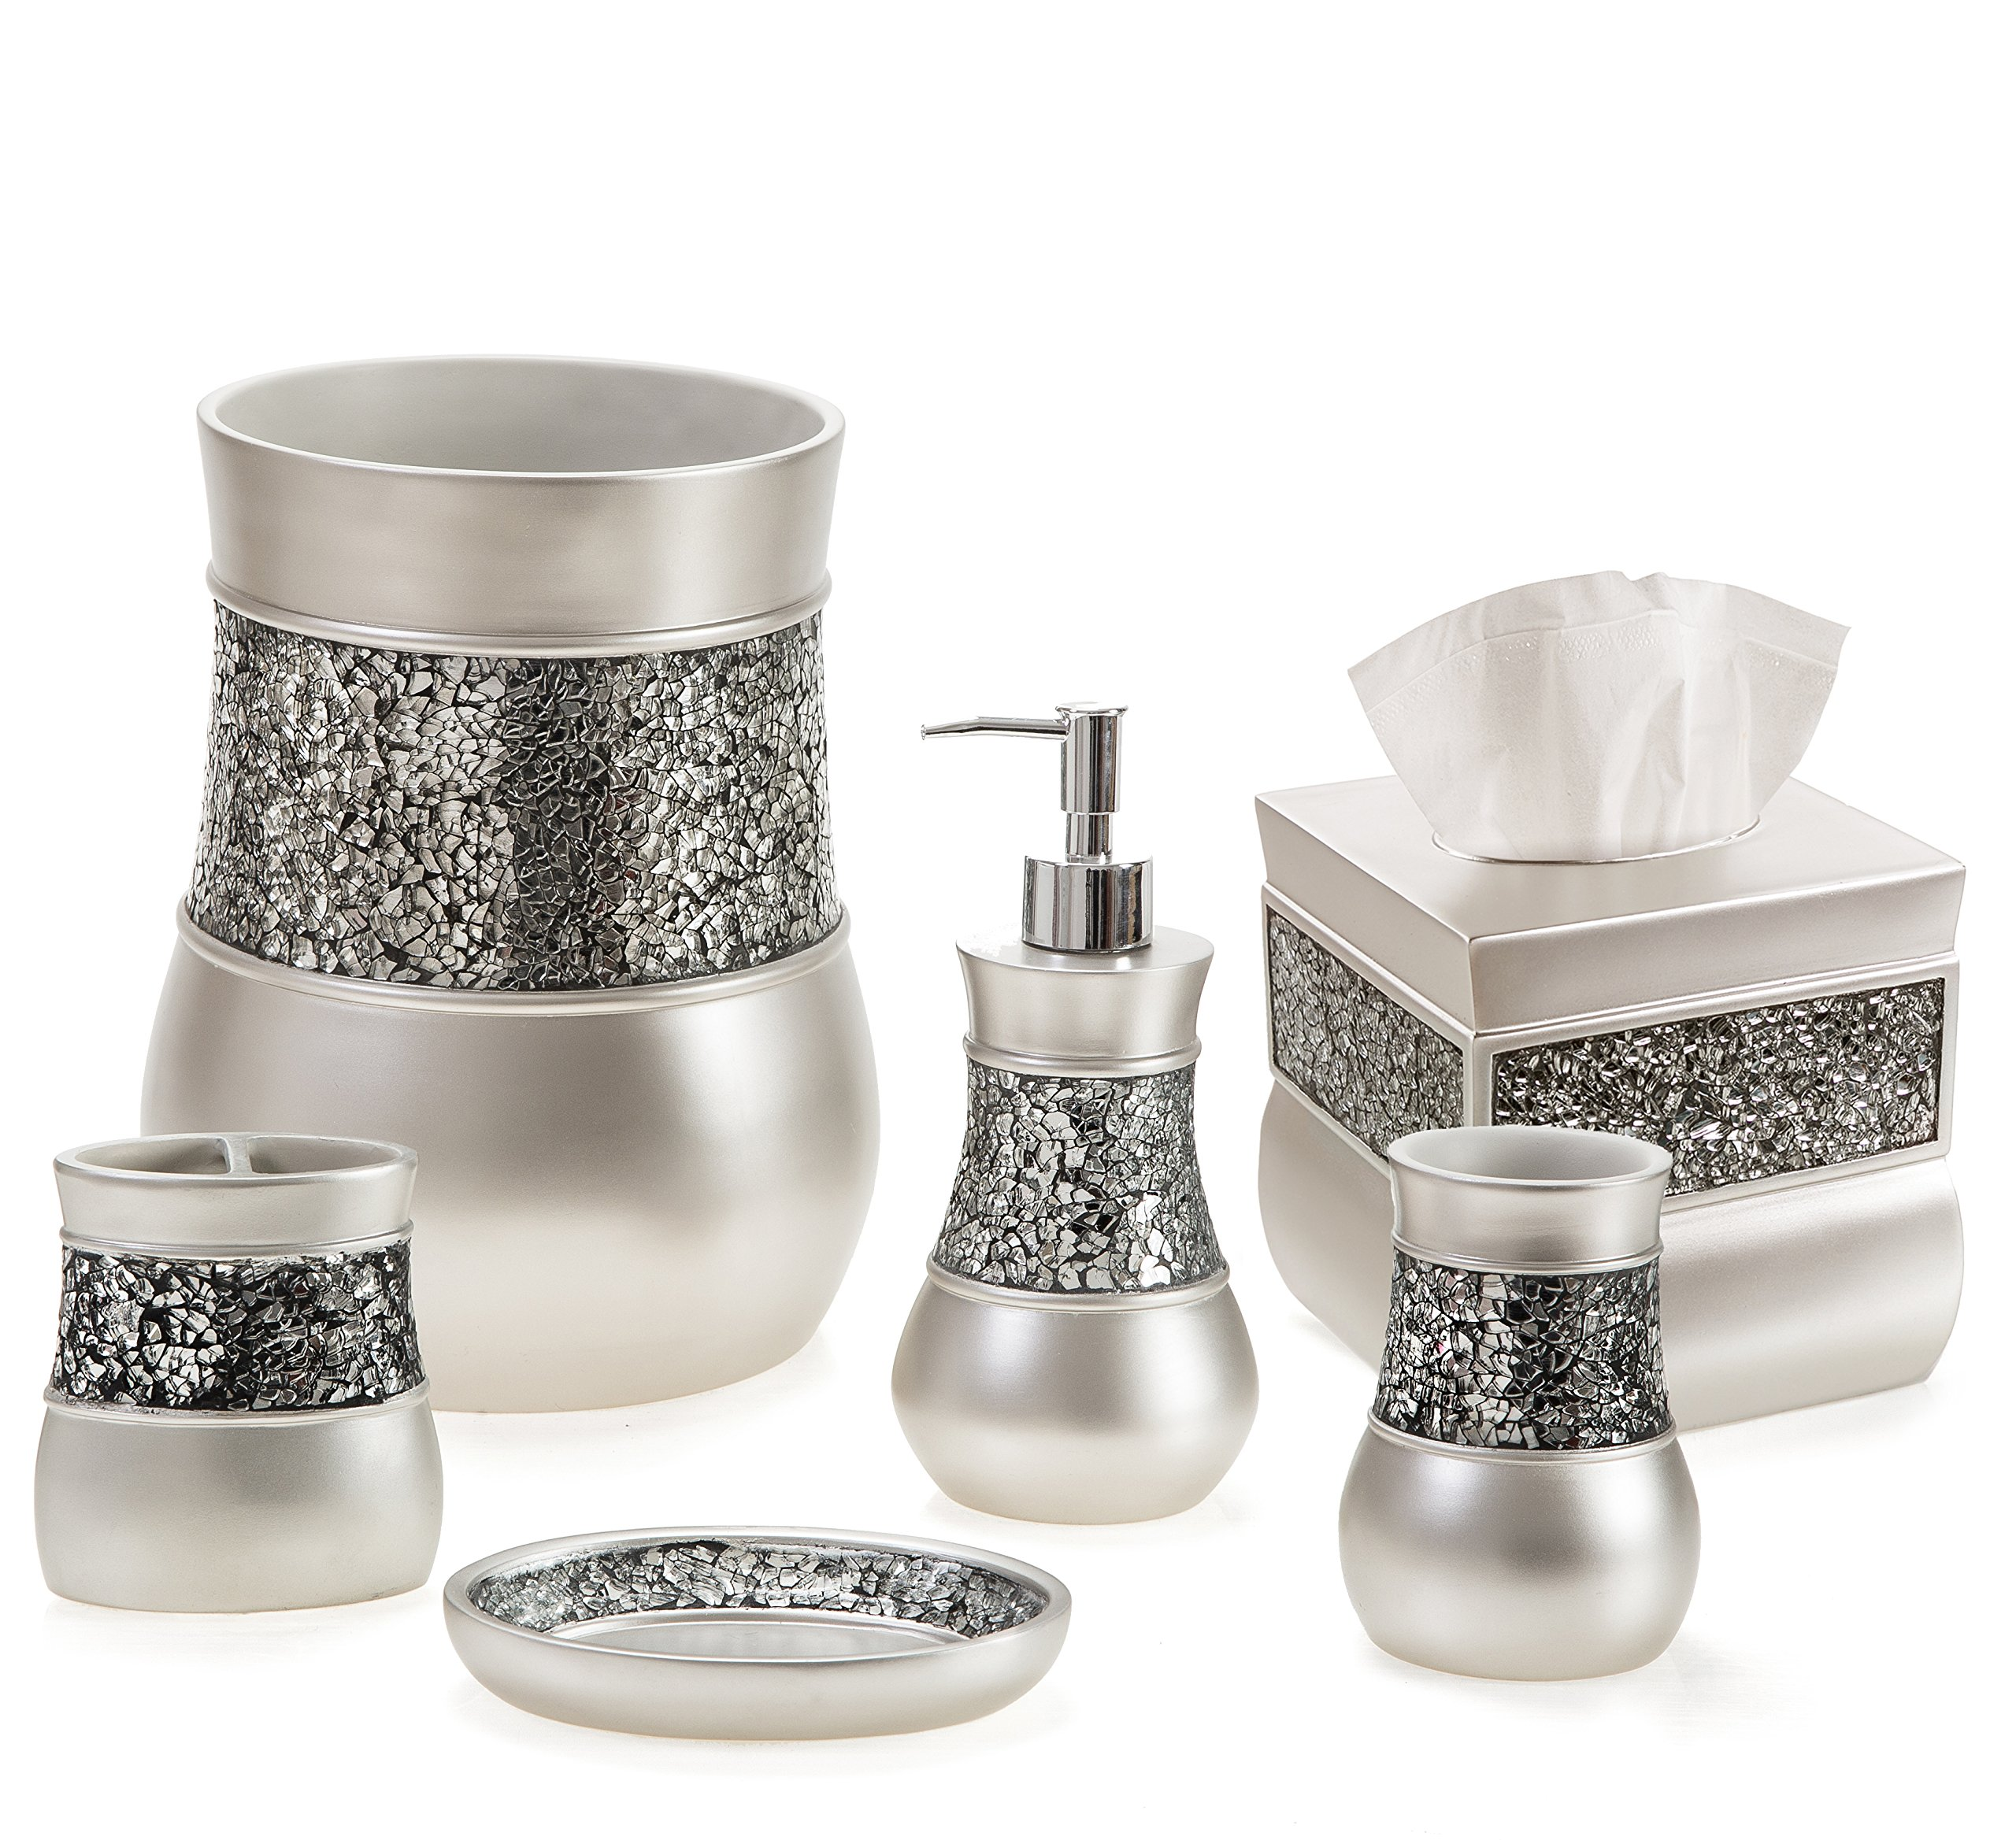 Creative Scents Brushed Nickel Bathroom